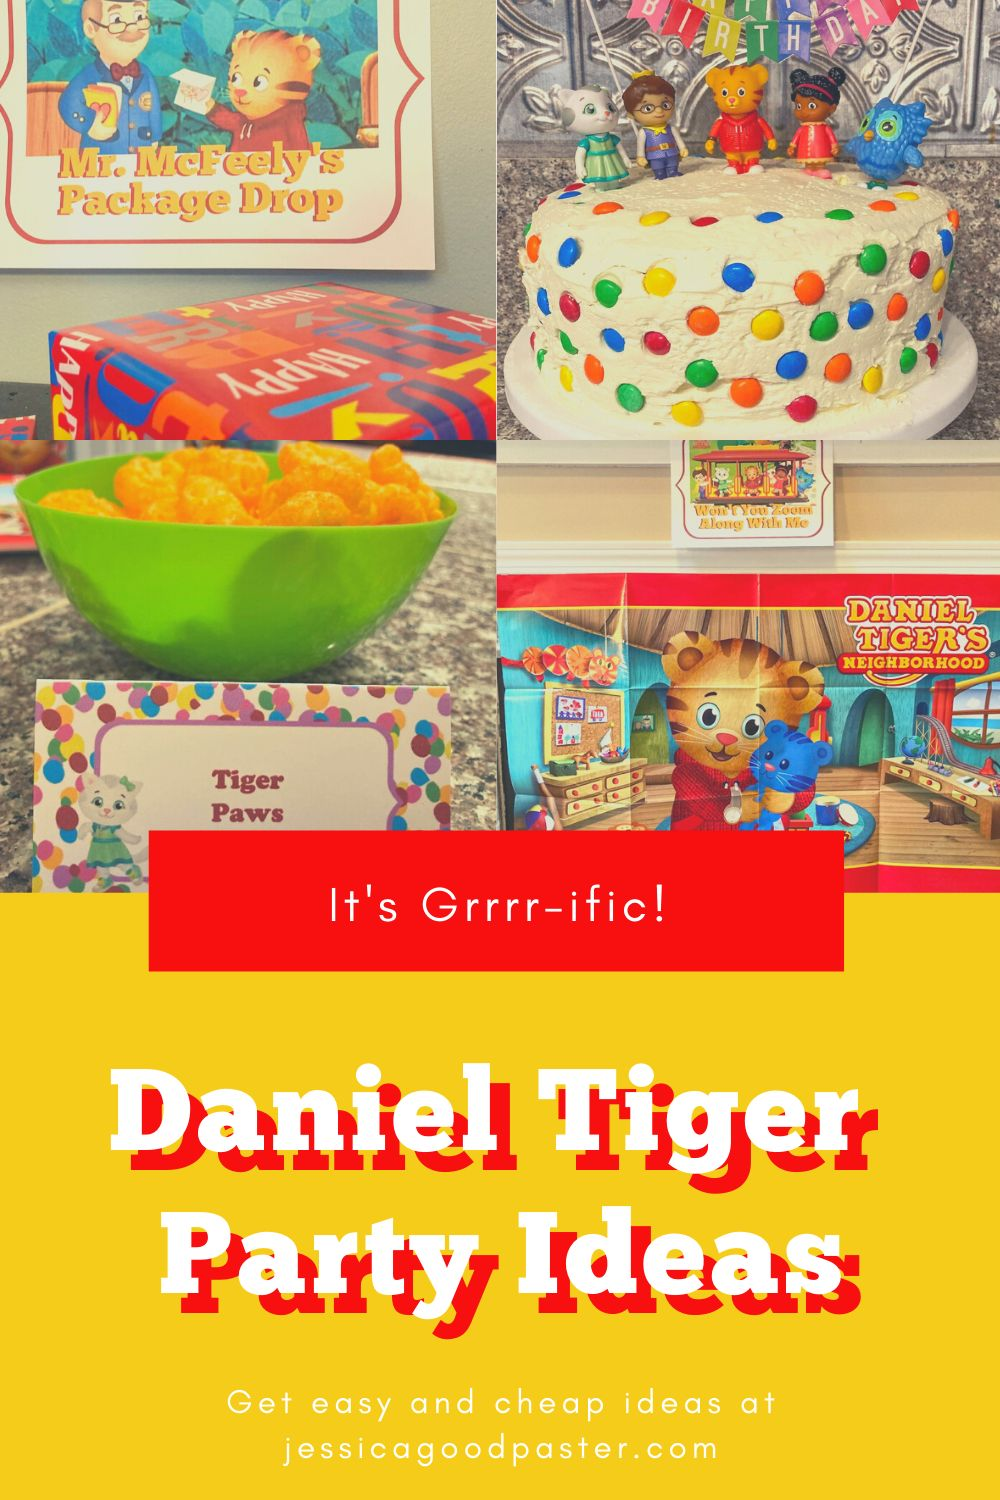 How To Host A Daniel Tiger Party Your Kid Will Love Jessicagoodpaster Com